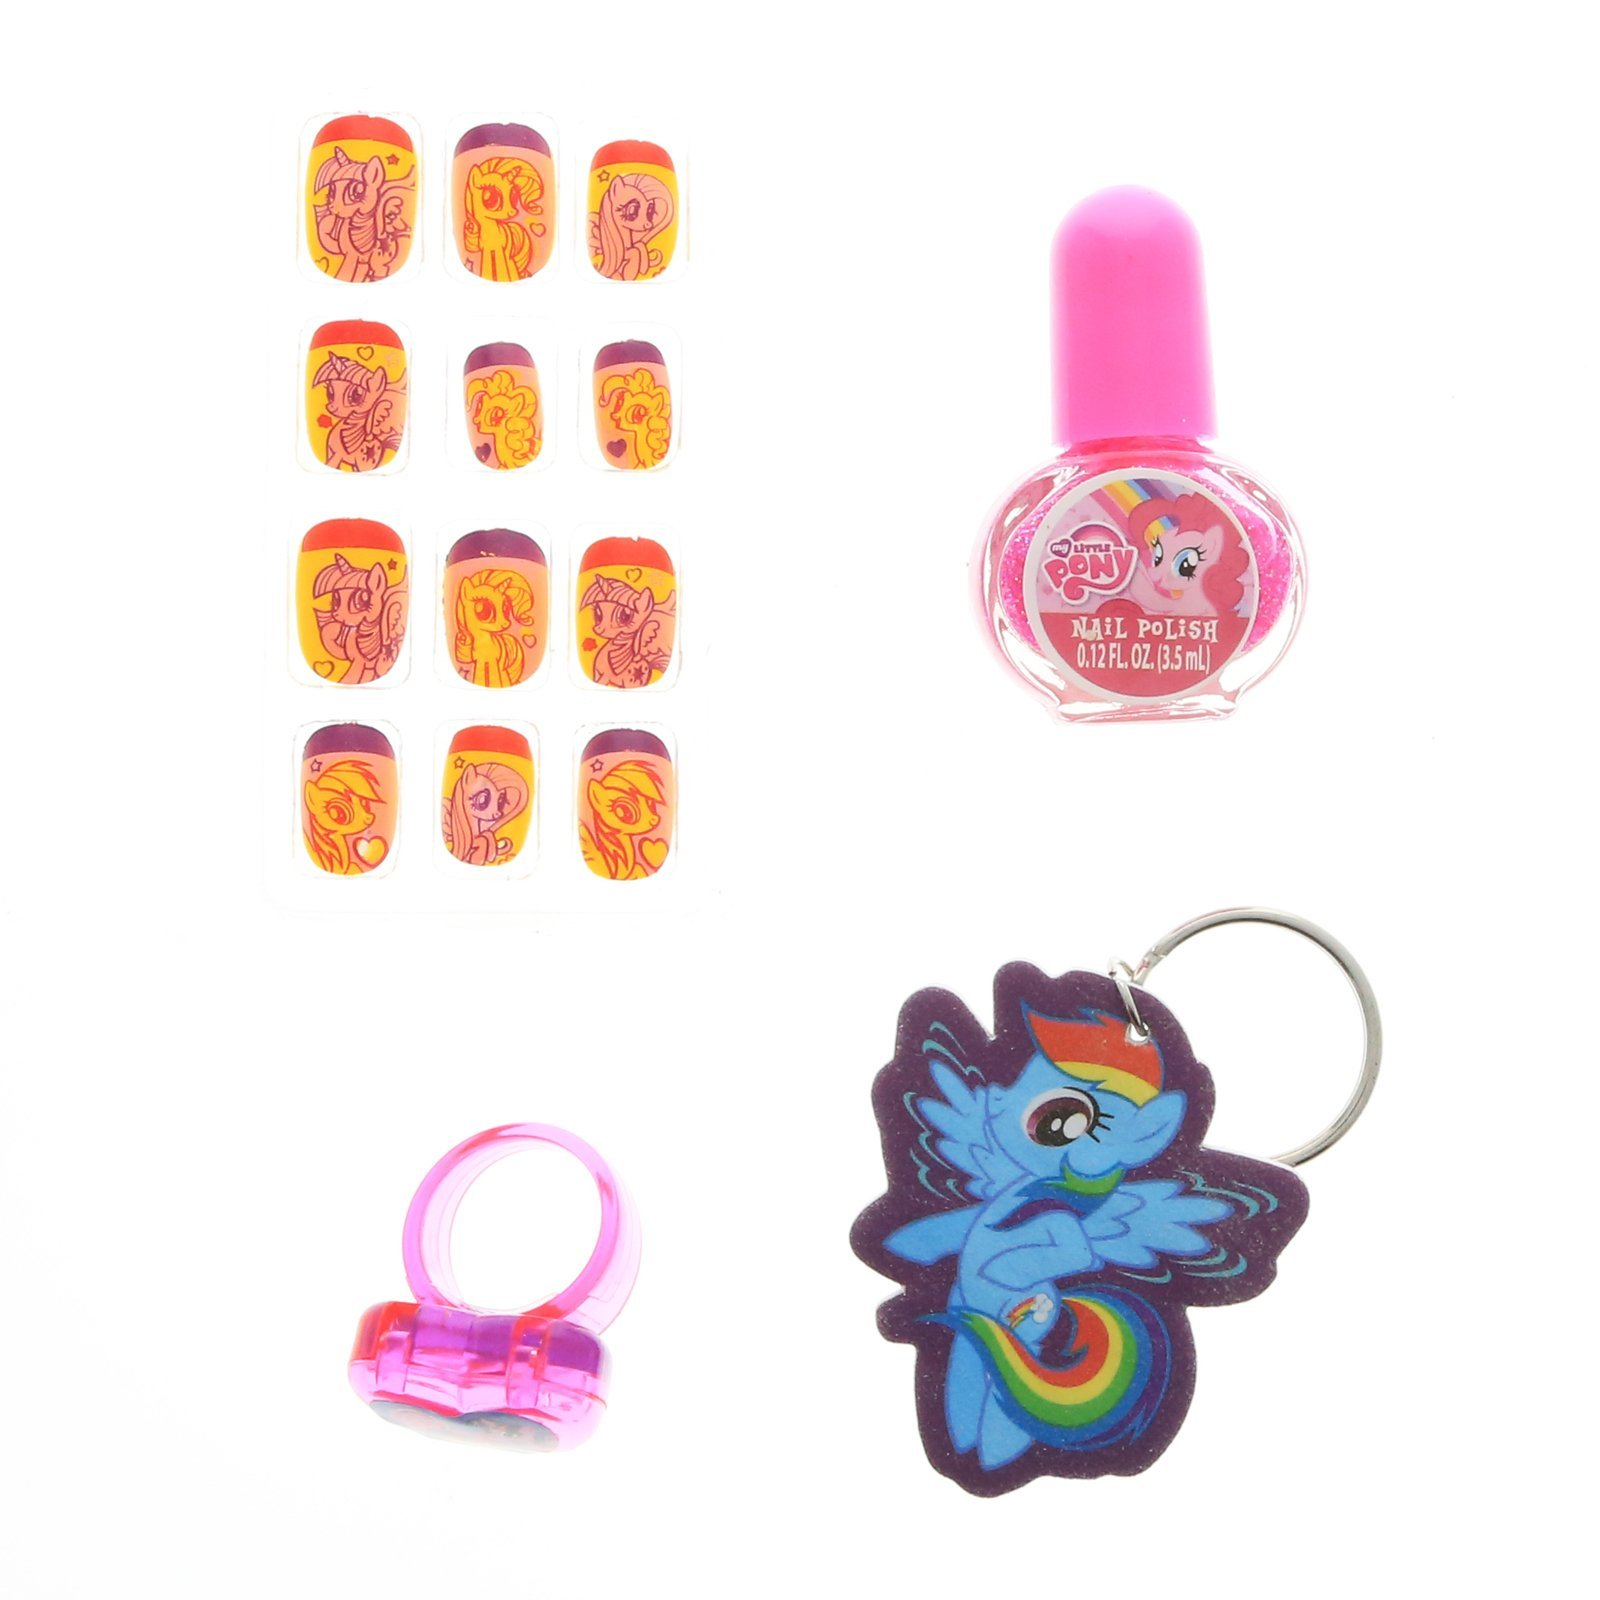 My Little Pony Girls Press On Nails Set Key Chain Nail File Polish and Ring